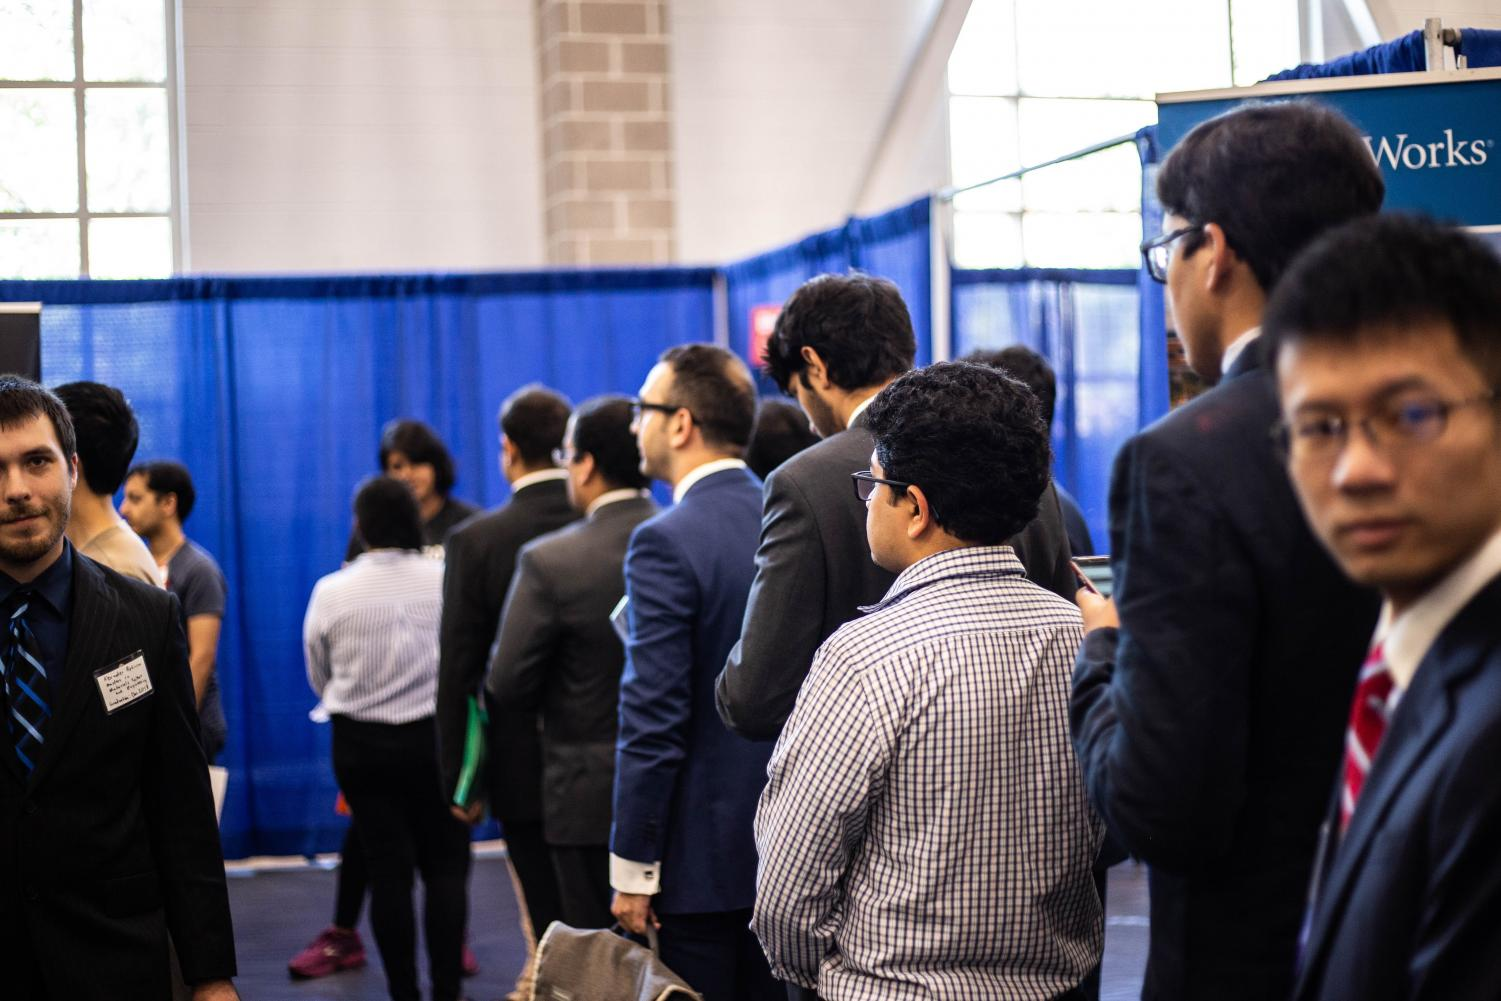 Hundreds of prospective Engineering students waited in line to chat with specific companies at the Engineering career fair at the ARC on Sept. 11, 2018.